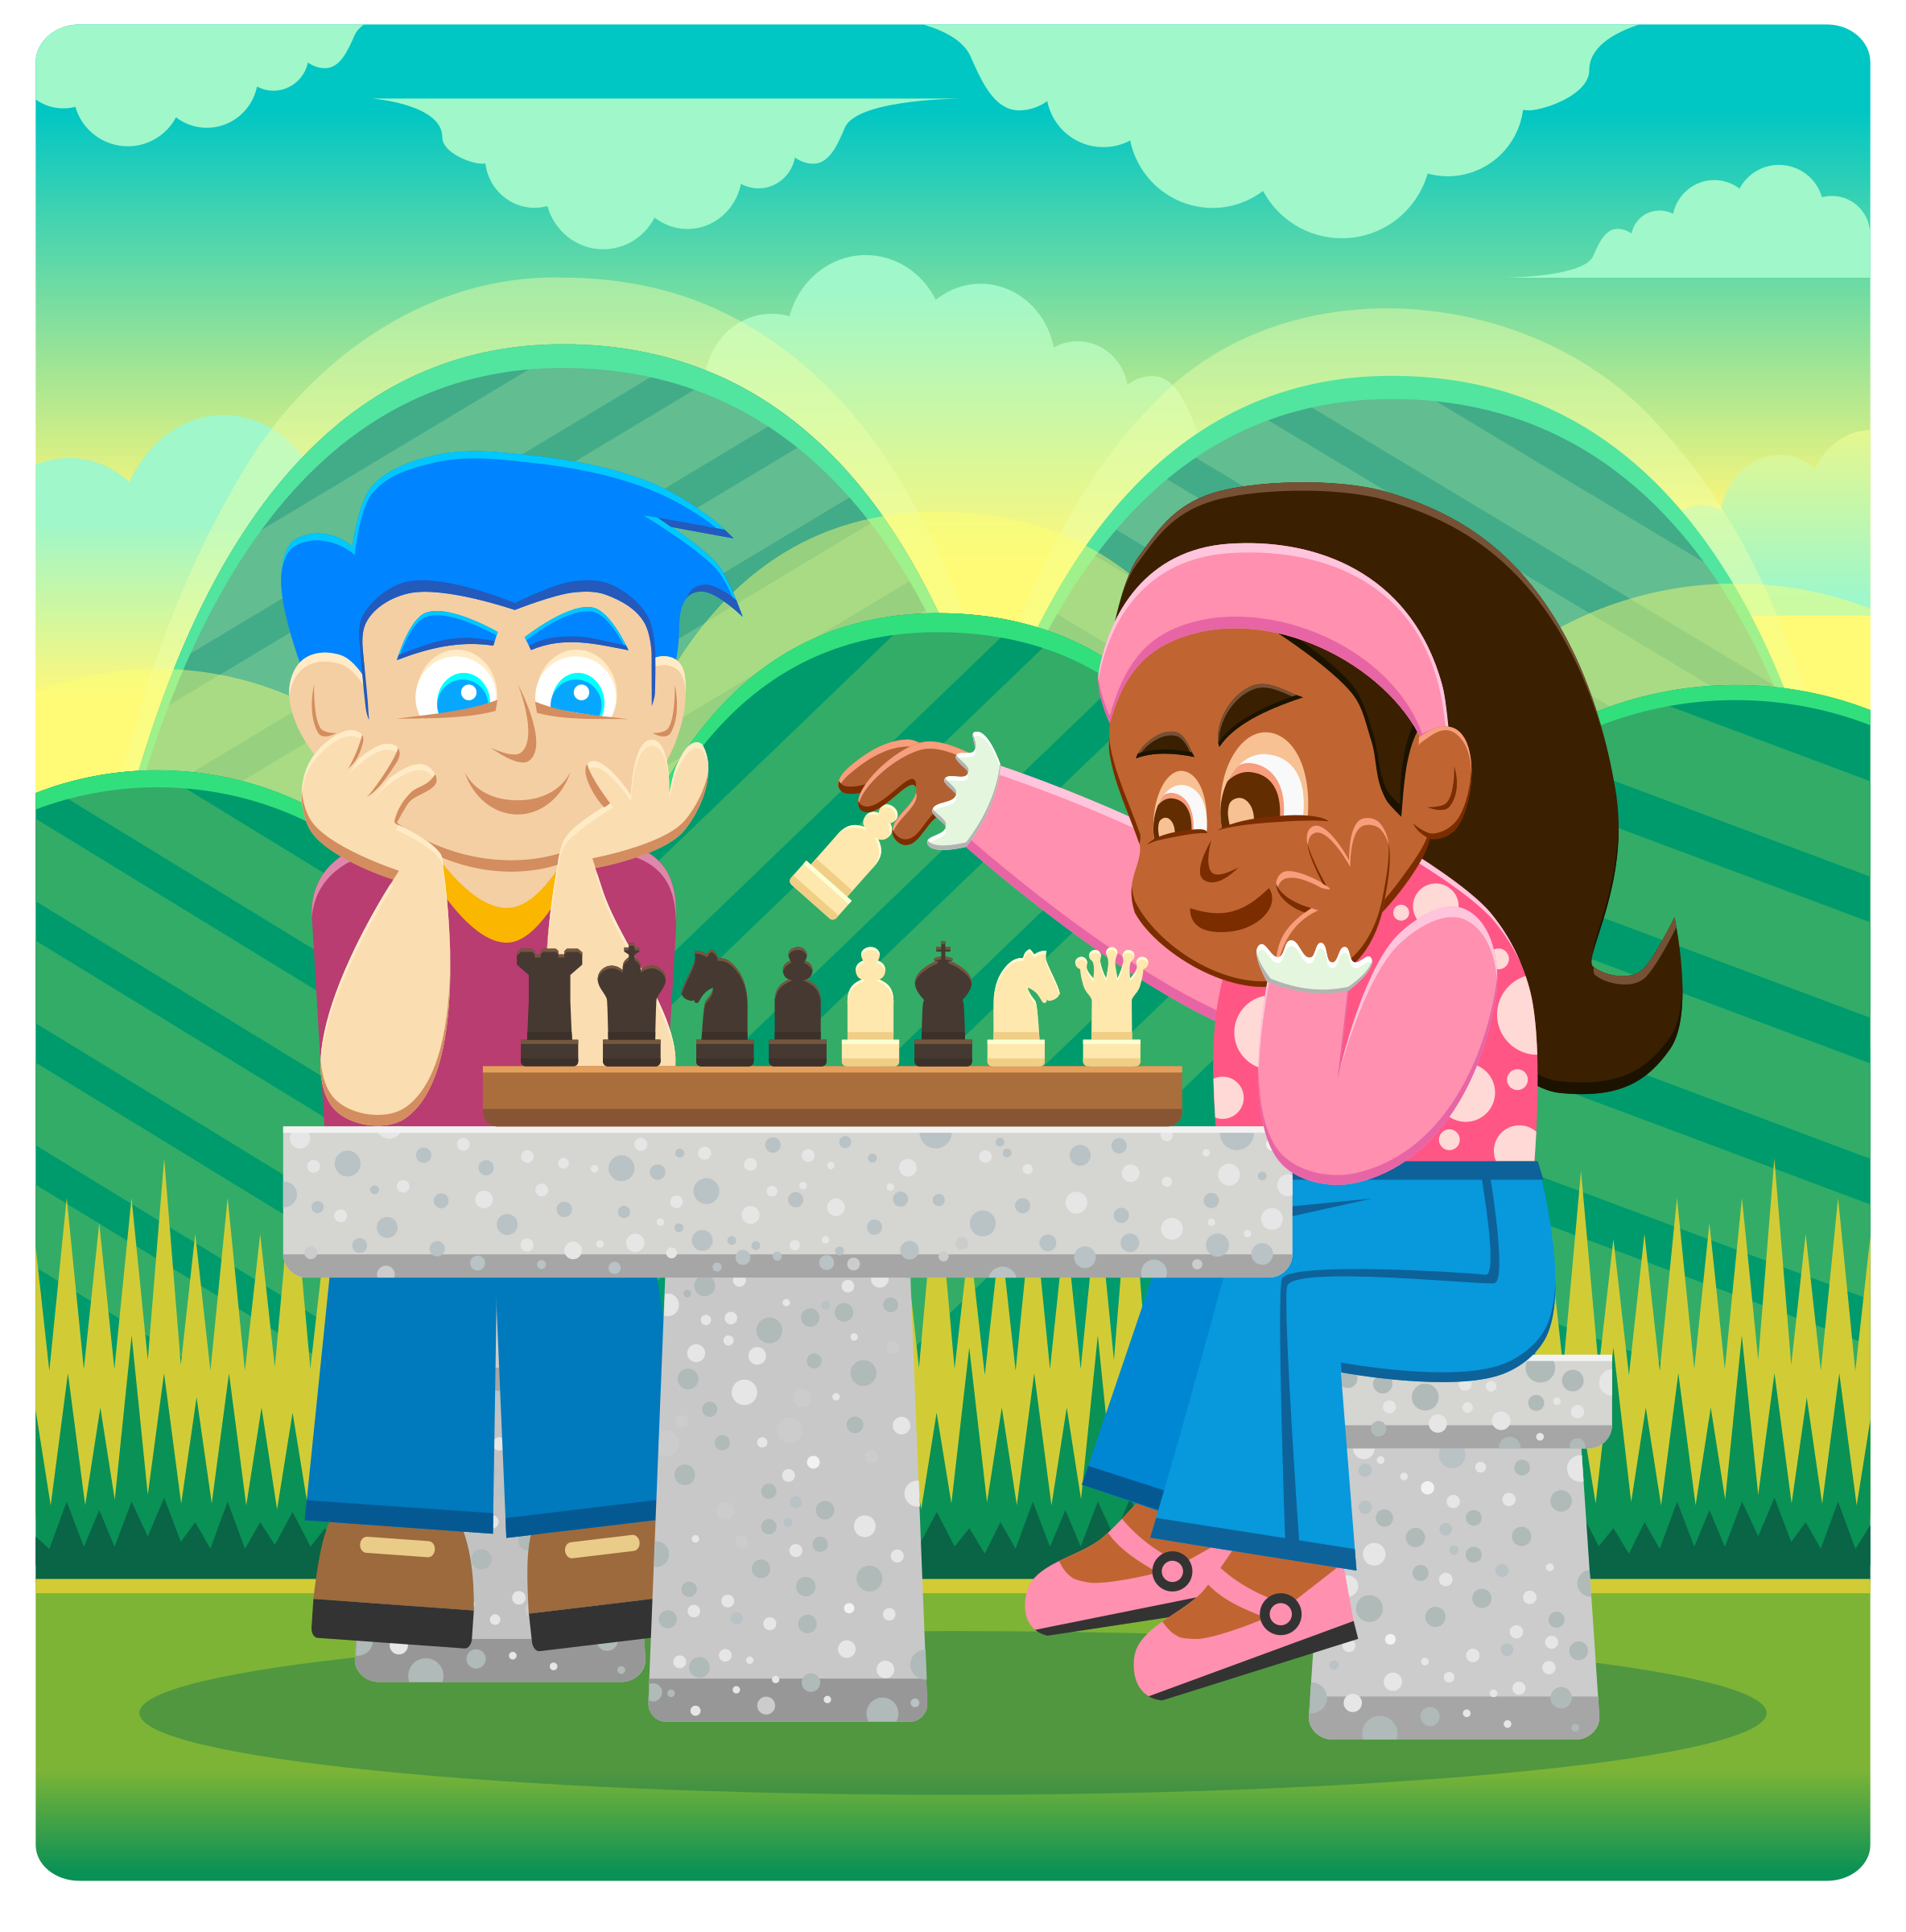 Kids Playing Chess 2 by Viscious-Speed